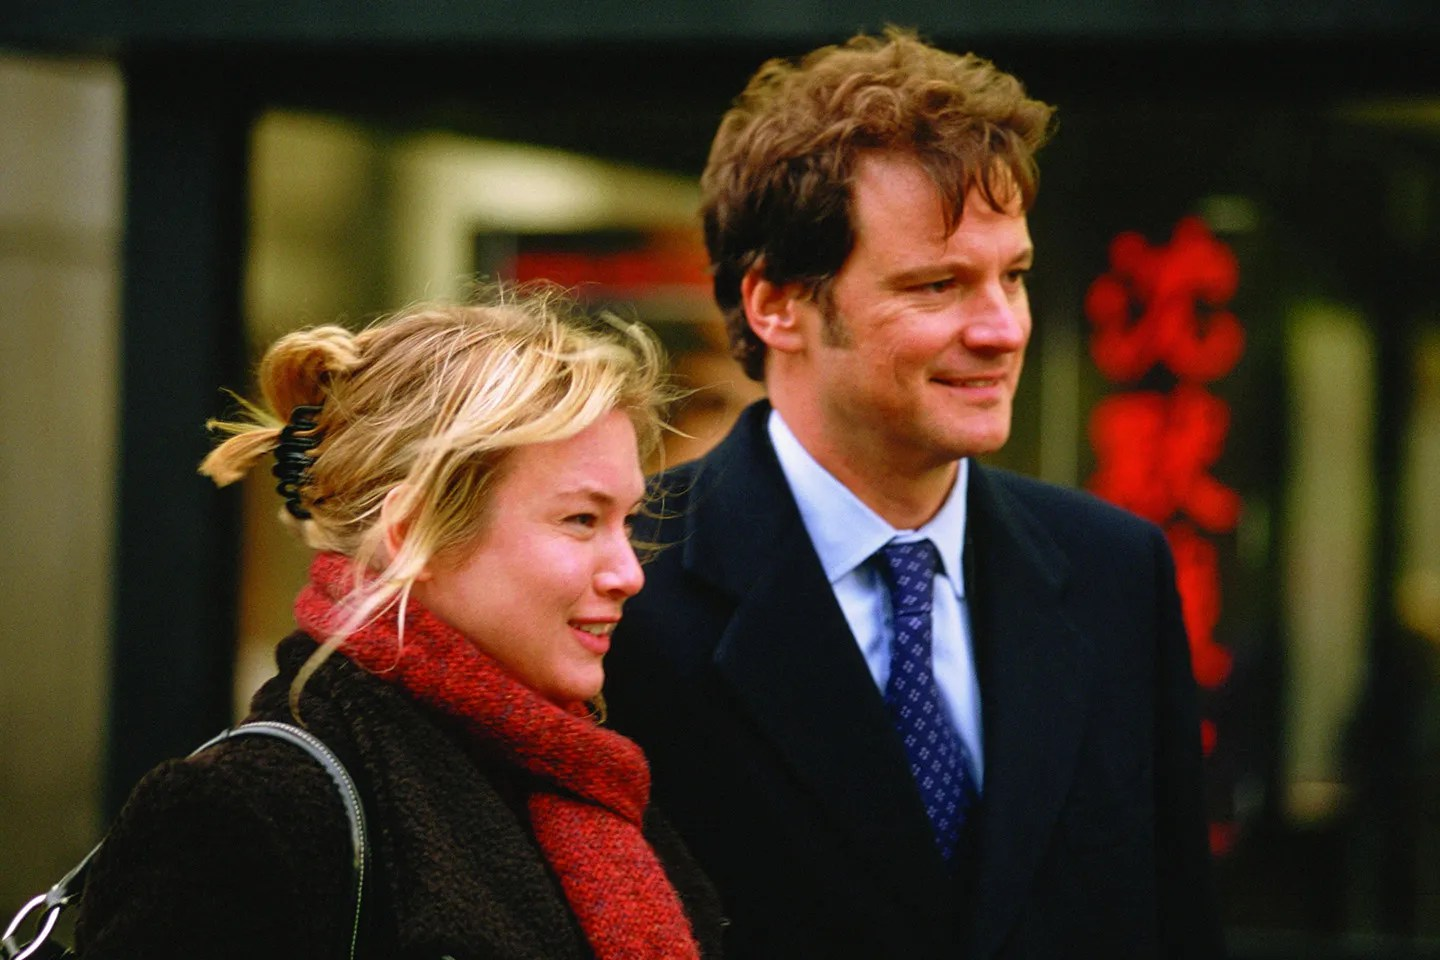 Image result for Colin Firth and Renee Zellweger in Bridget Jones' Diary